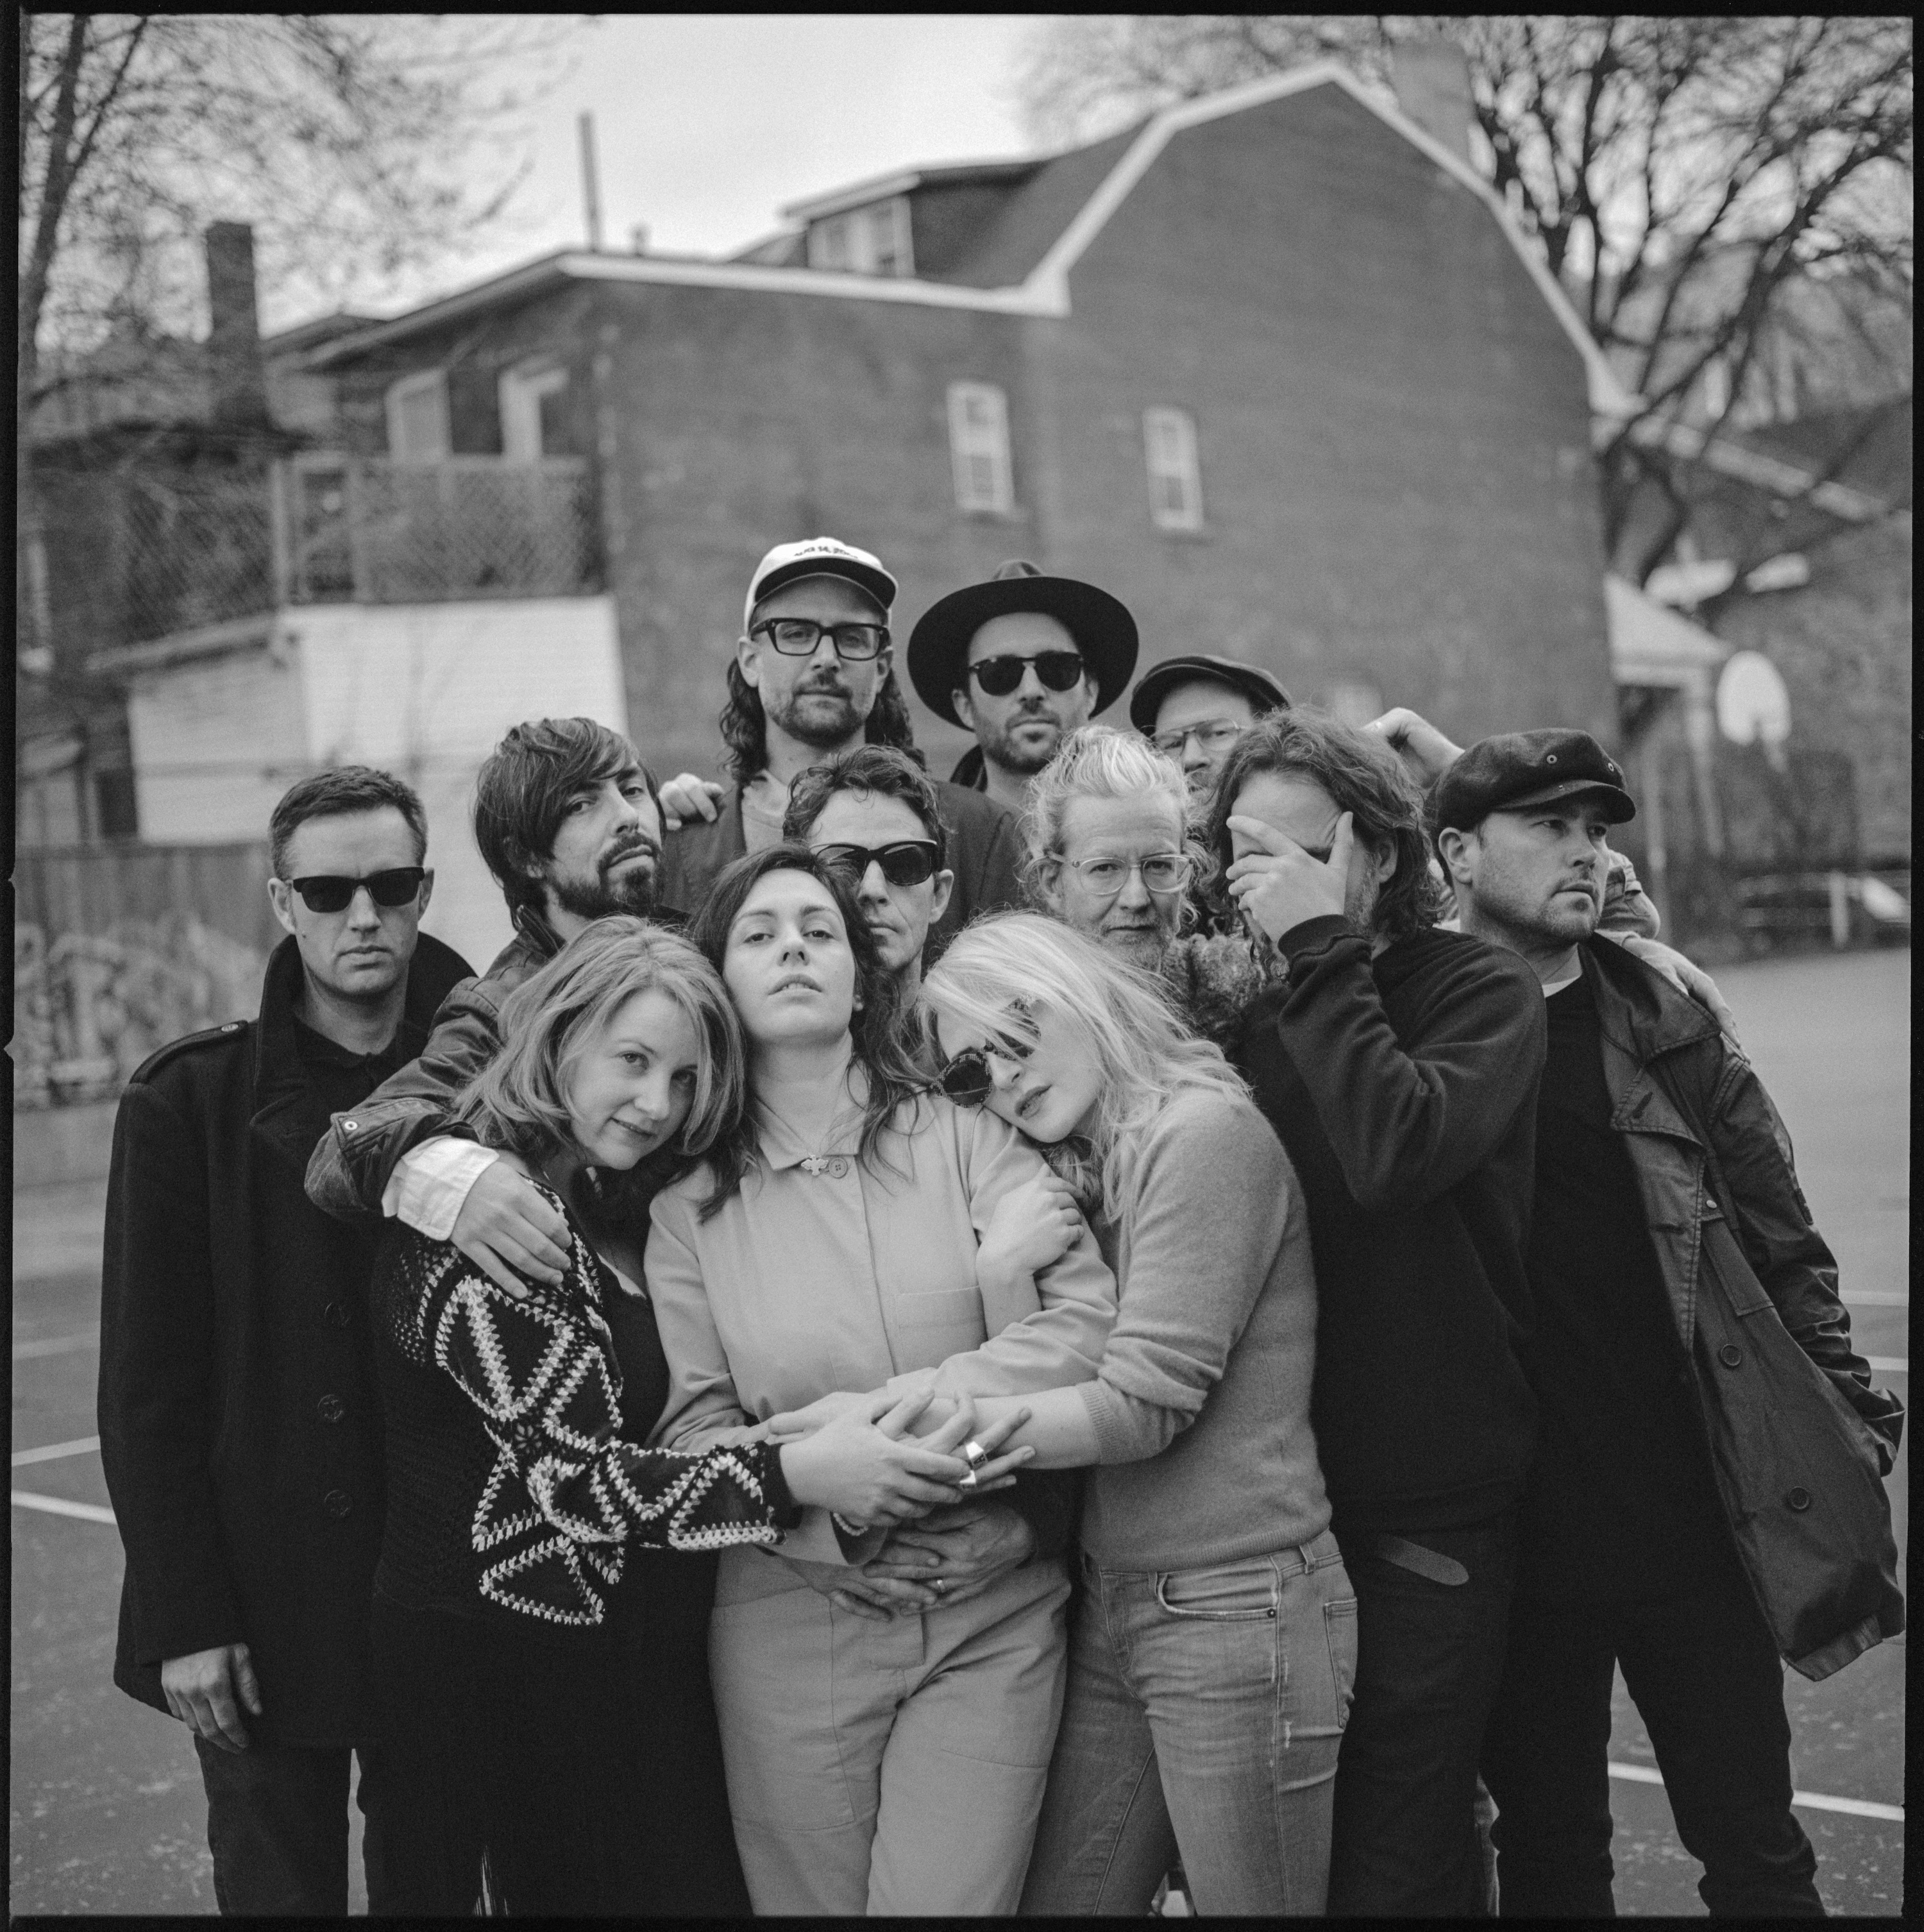 12 people huddle in a group in a black and white photograph. They stand on a children's playground, with a brick house behind them. The group is a blend of men and women. They are dressed casually but with long sleeves, as if for fall weather.